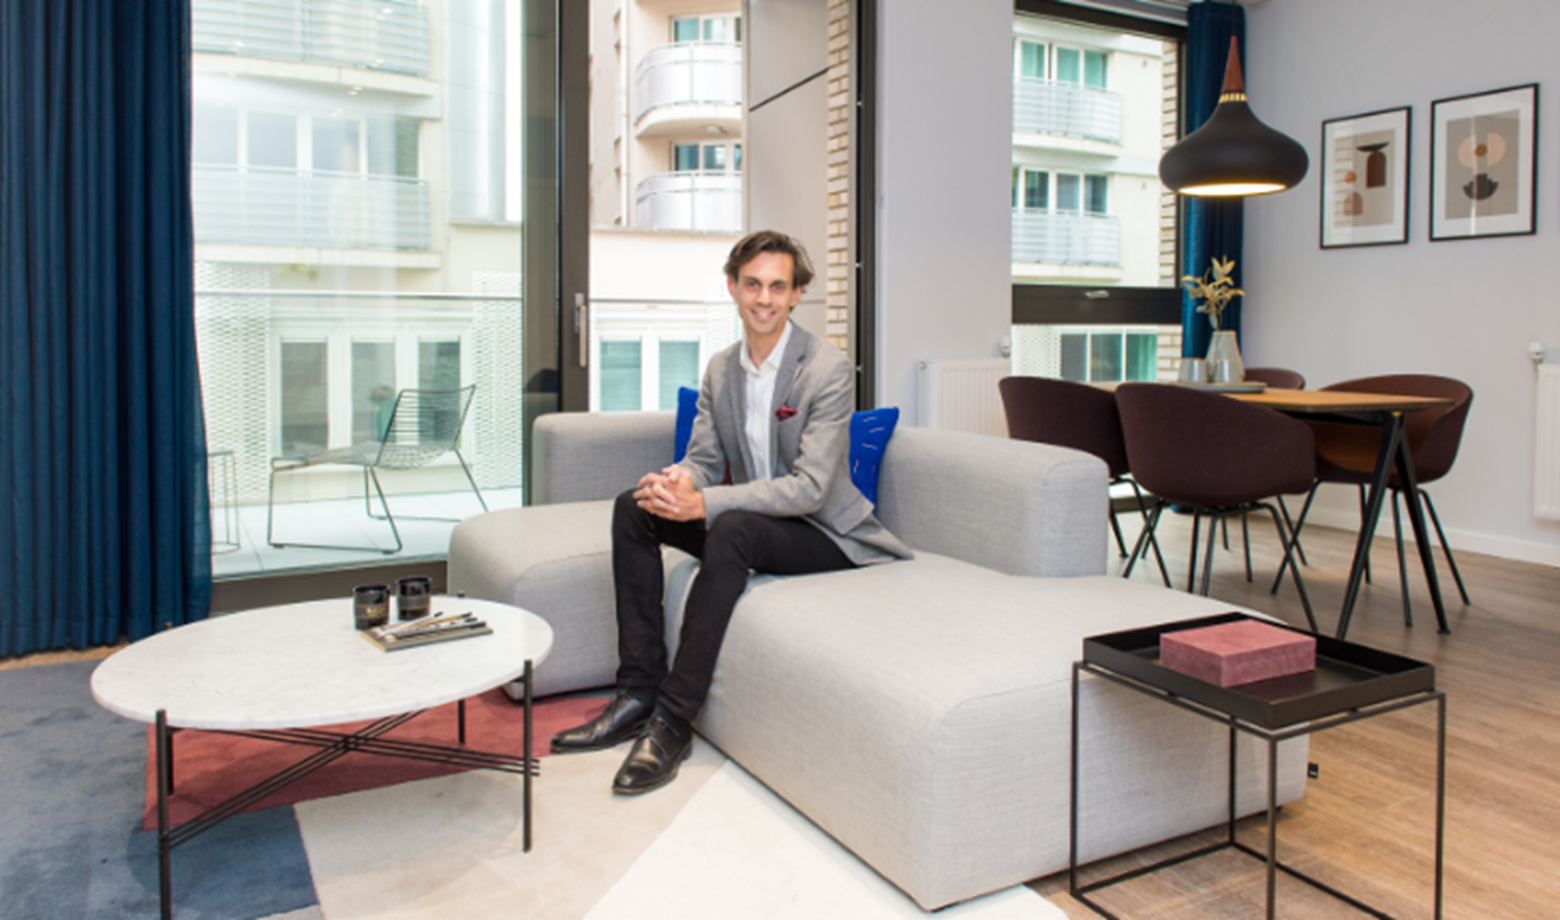 Timothy Percival - Shared Ownership purchaser at The City Angel